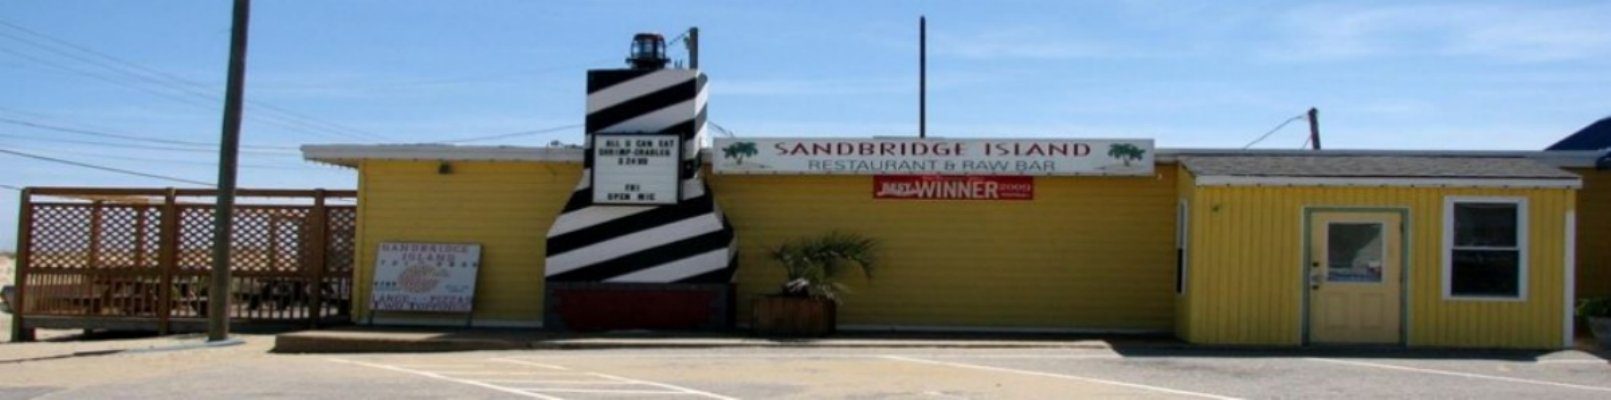 Sandbridge Island Restaurant building